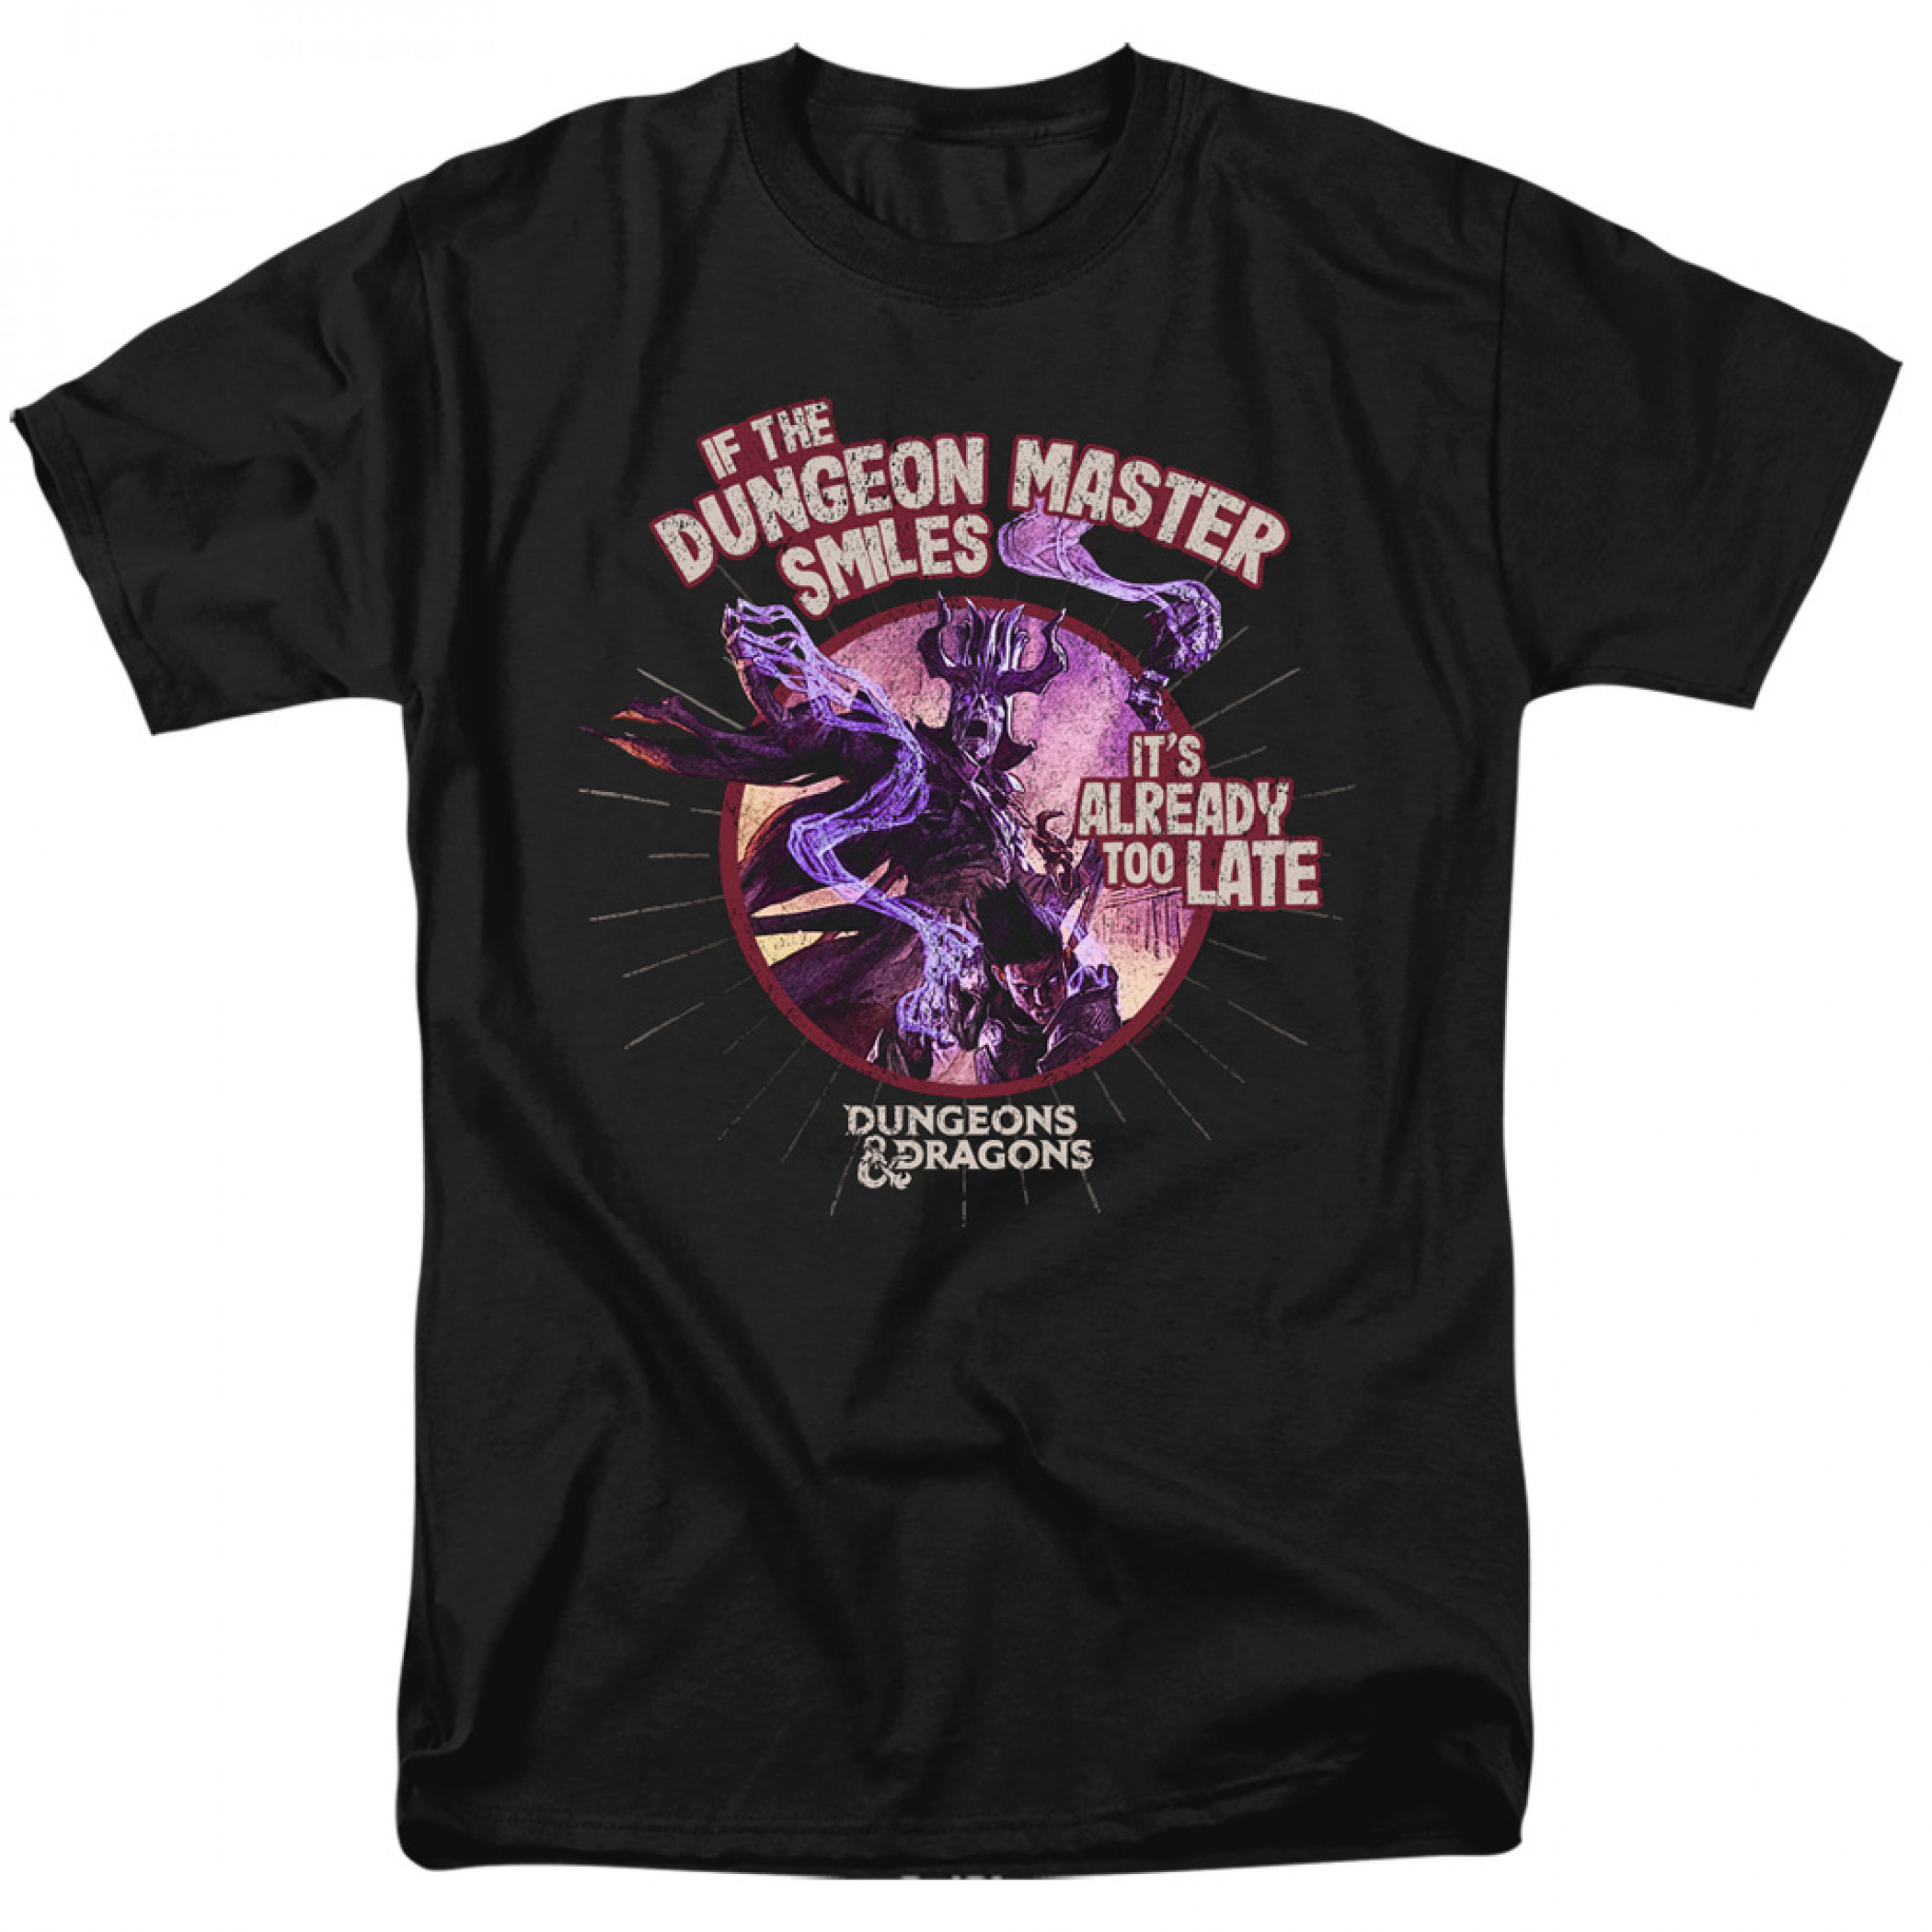 Dungeons & Dragons If The DM Smiles T-Shirt